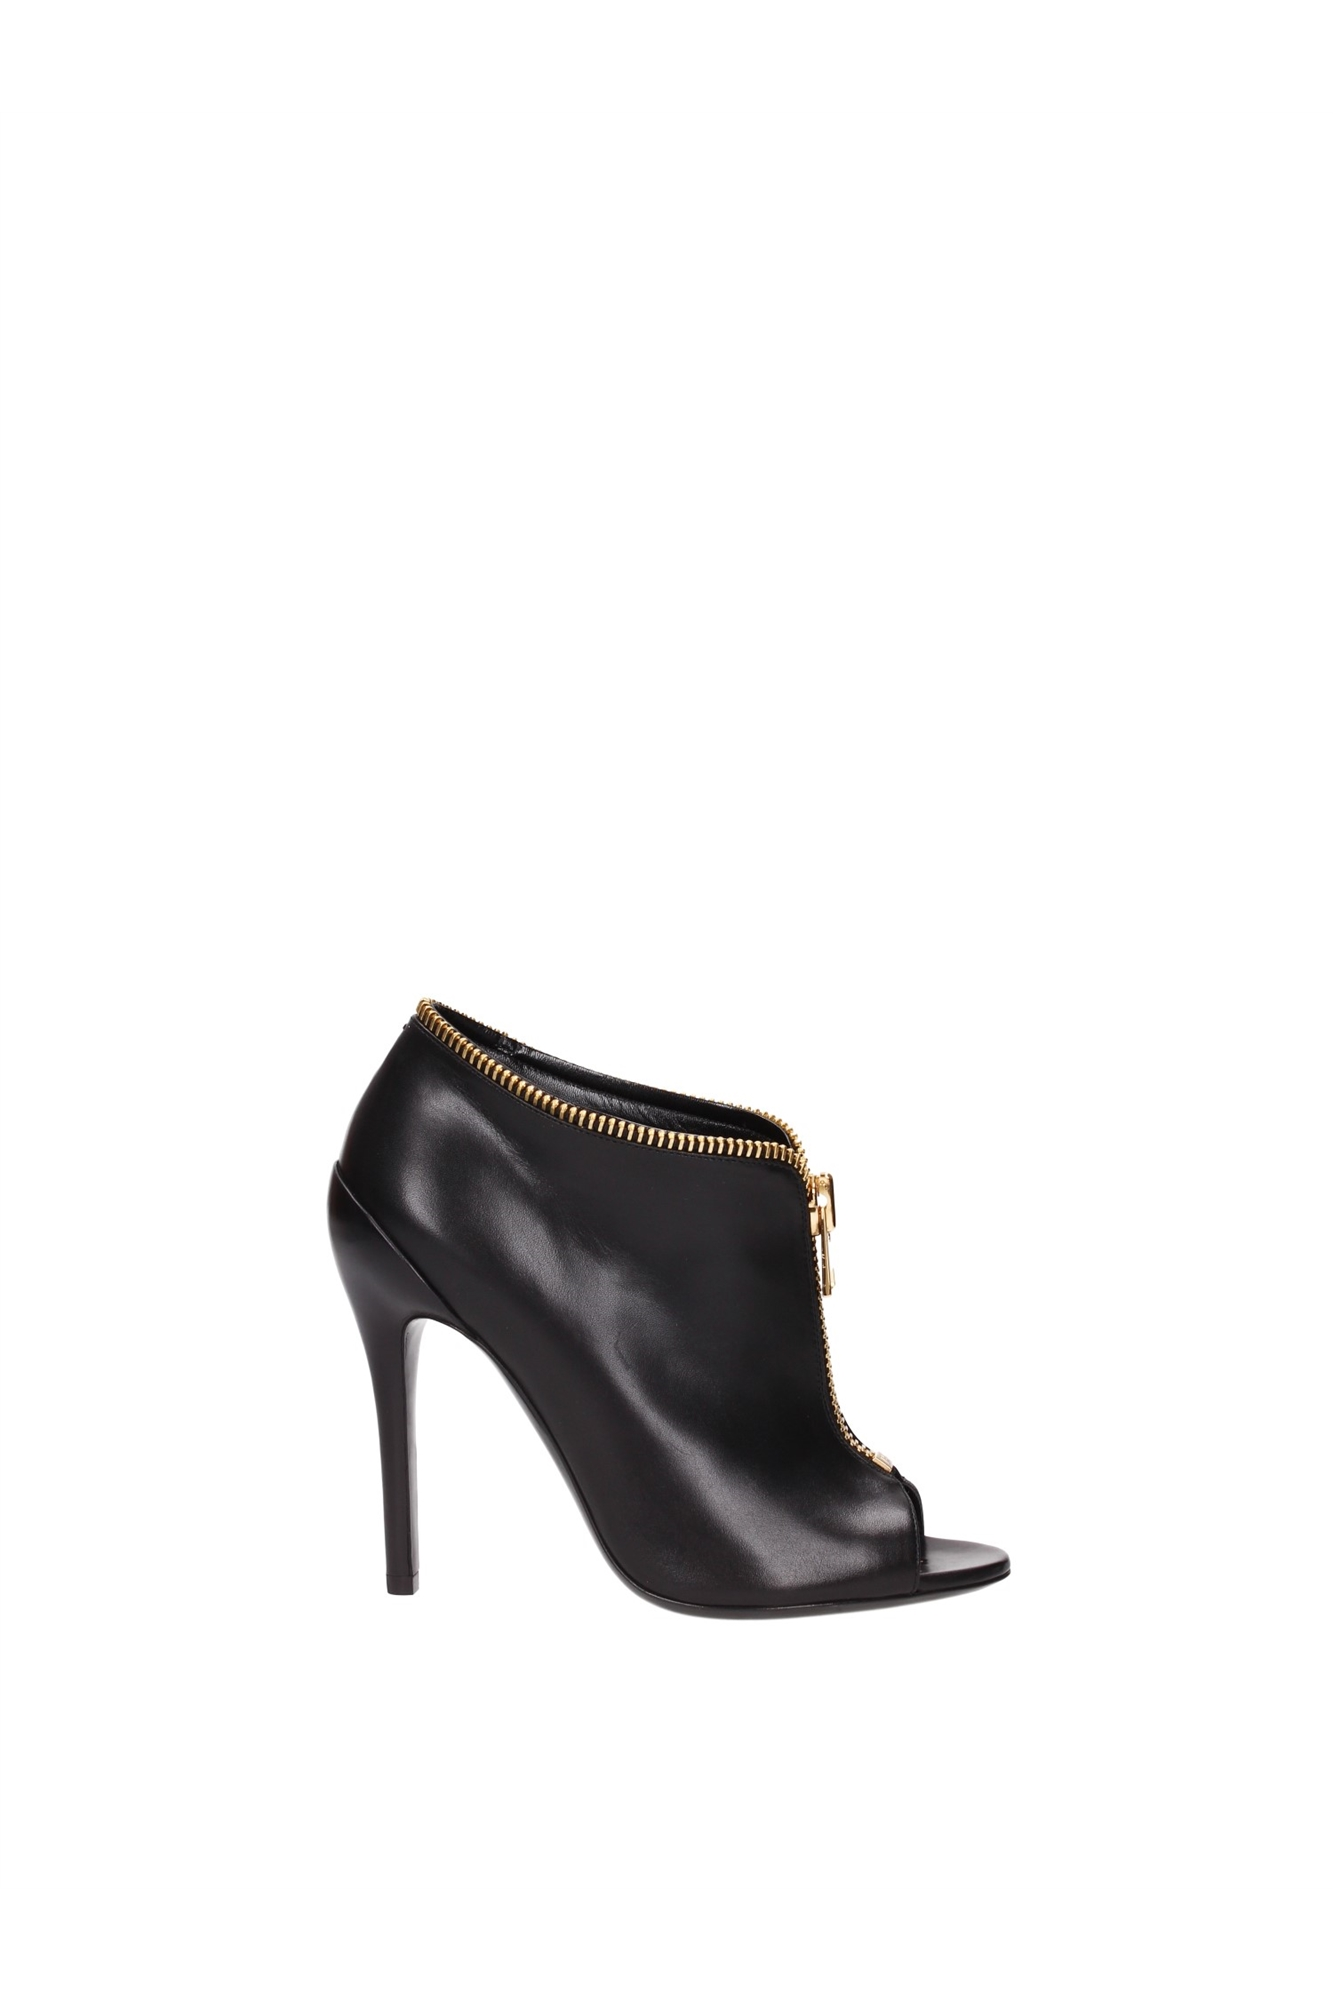 ankle boots tom ford leather black 115w1245tscablk